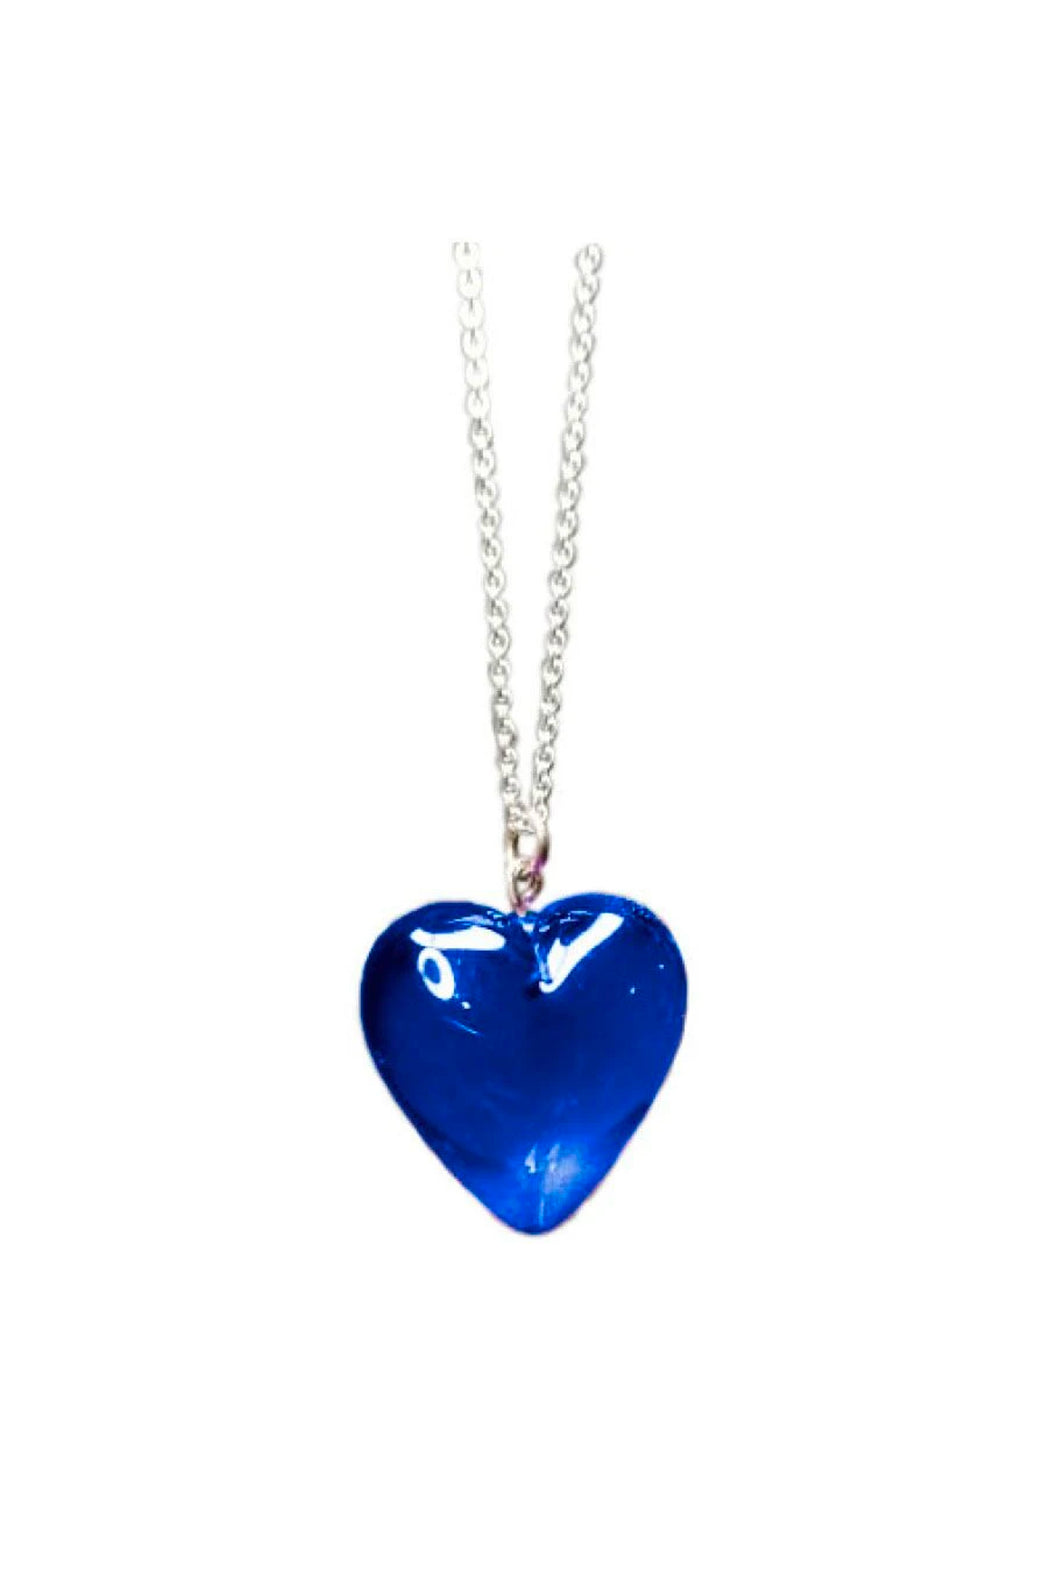 Resin Heart Color Necklace